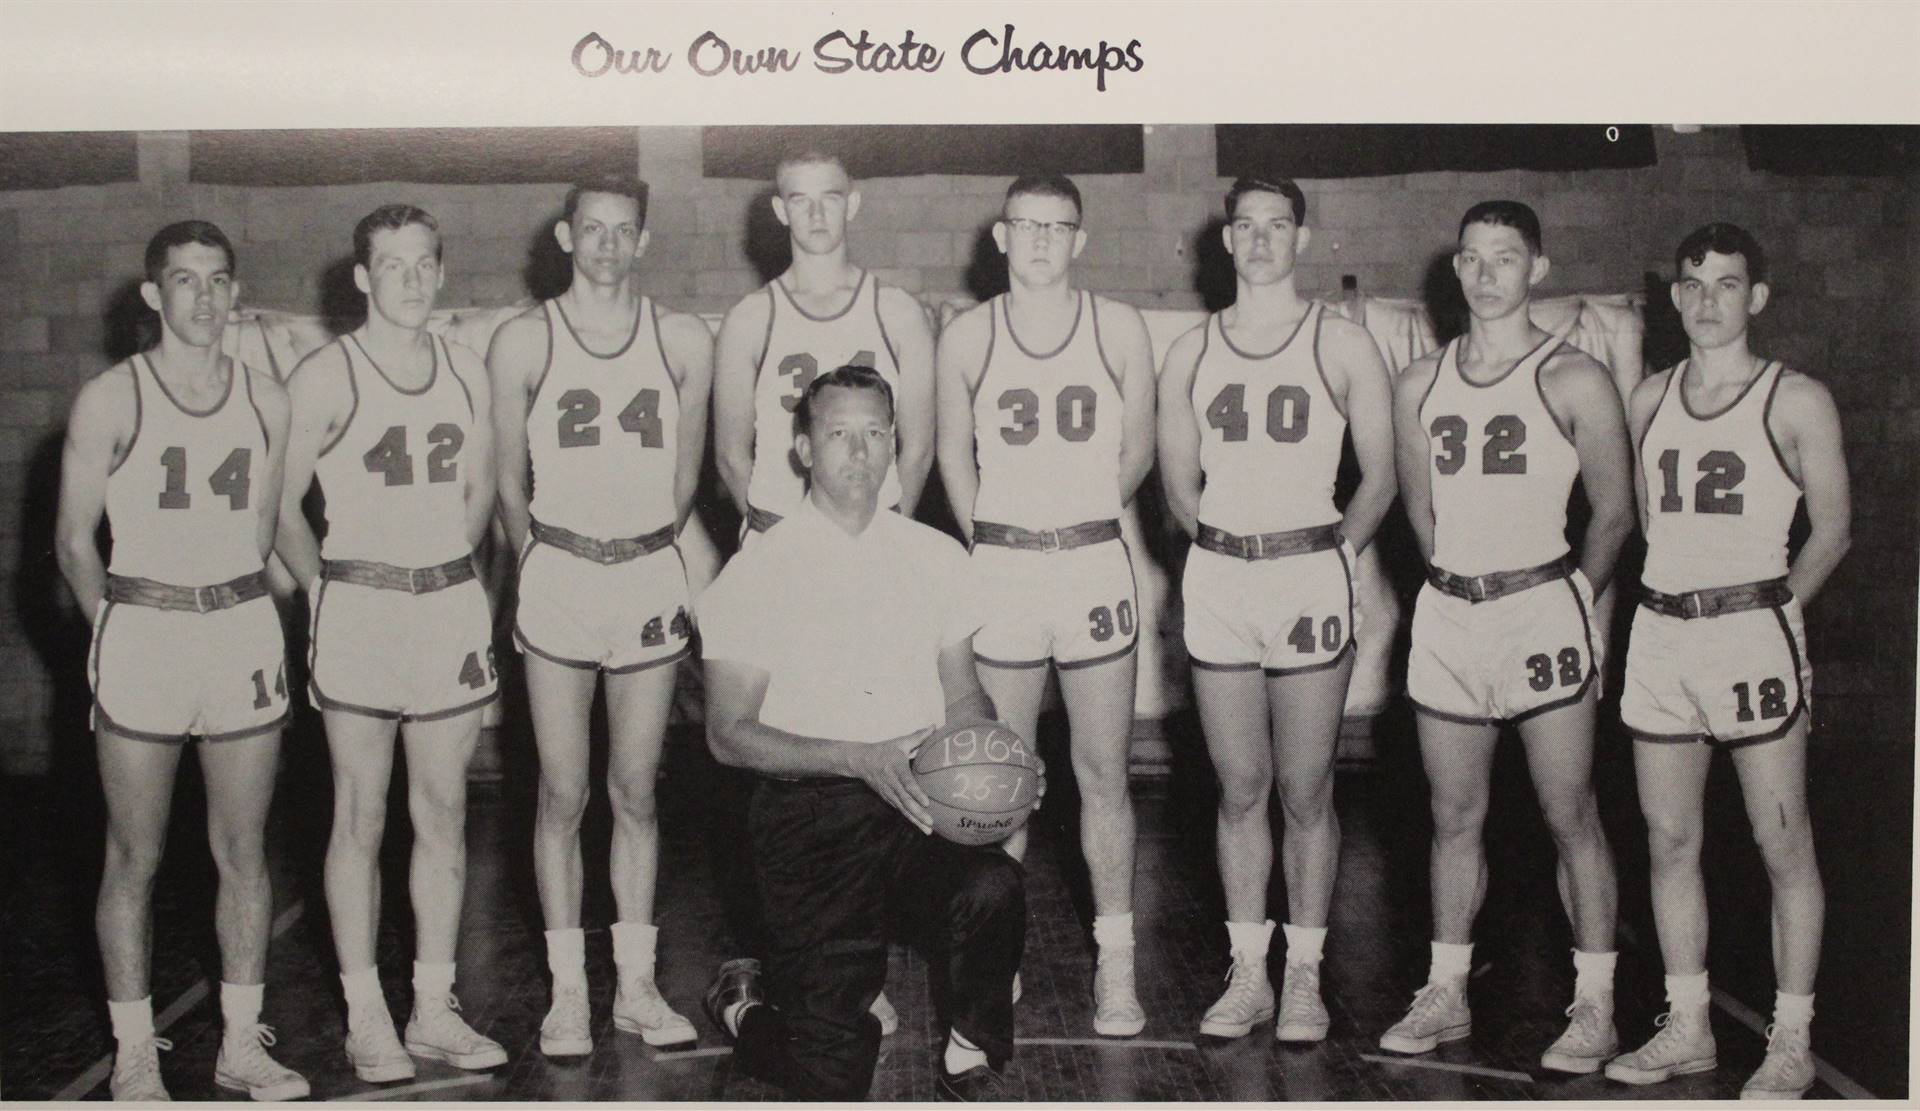 1964 Our Own State Champs